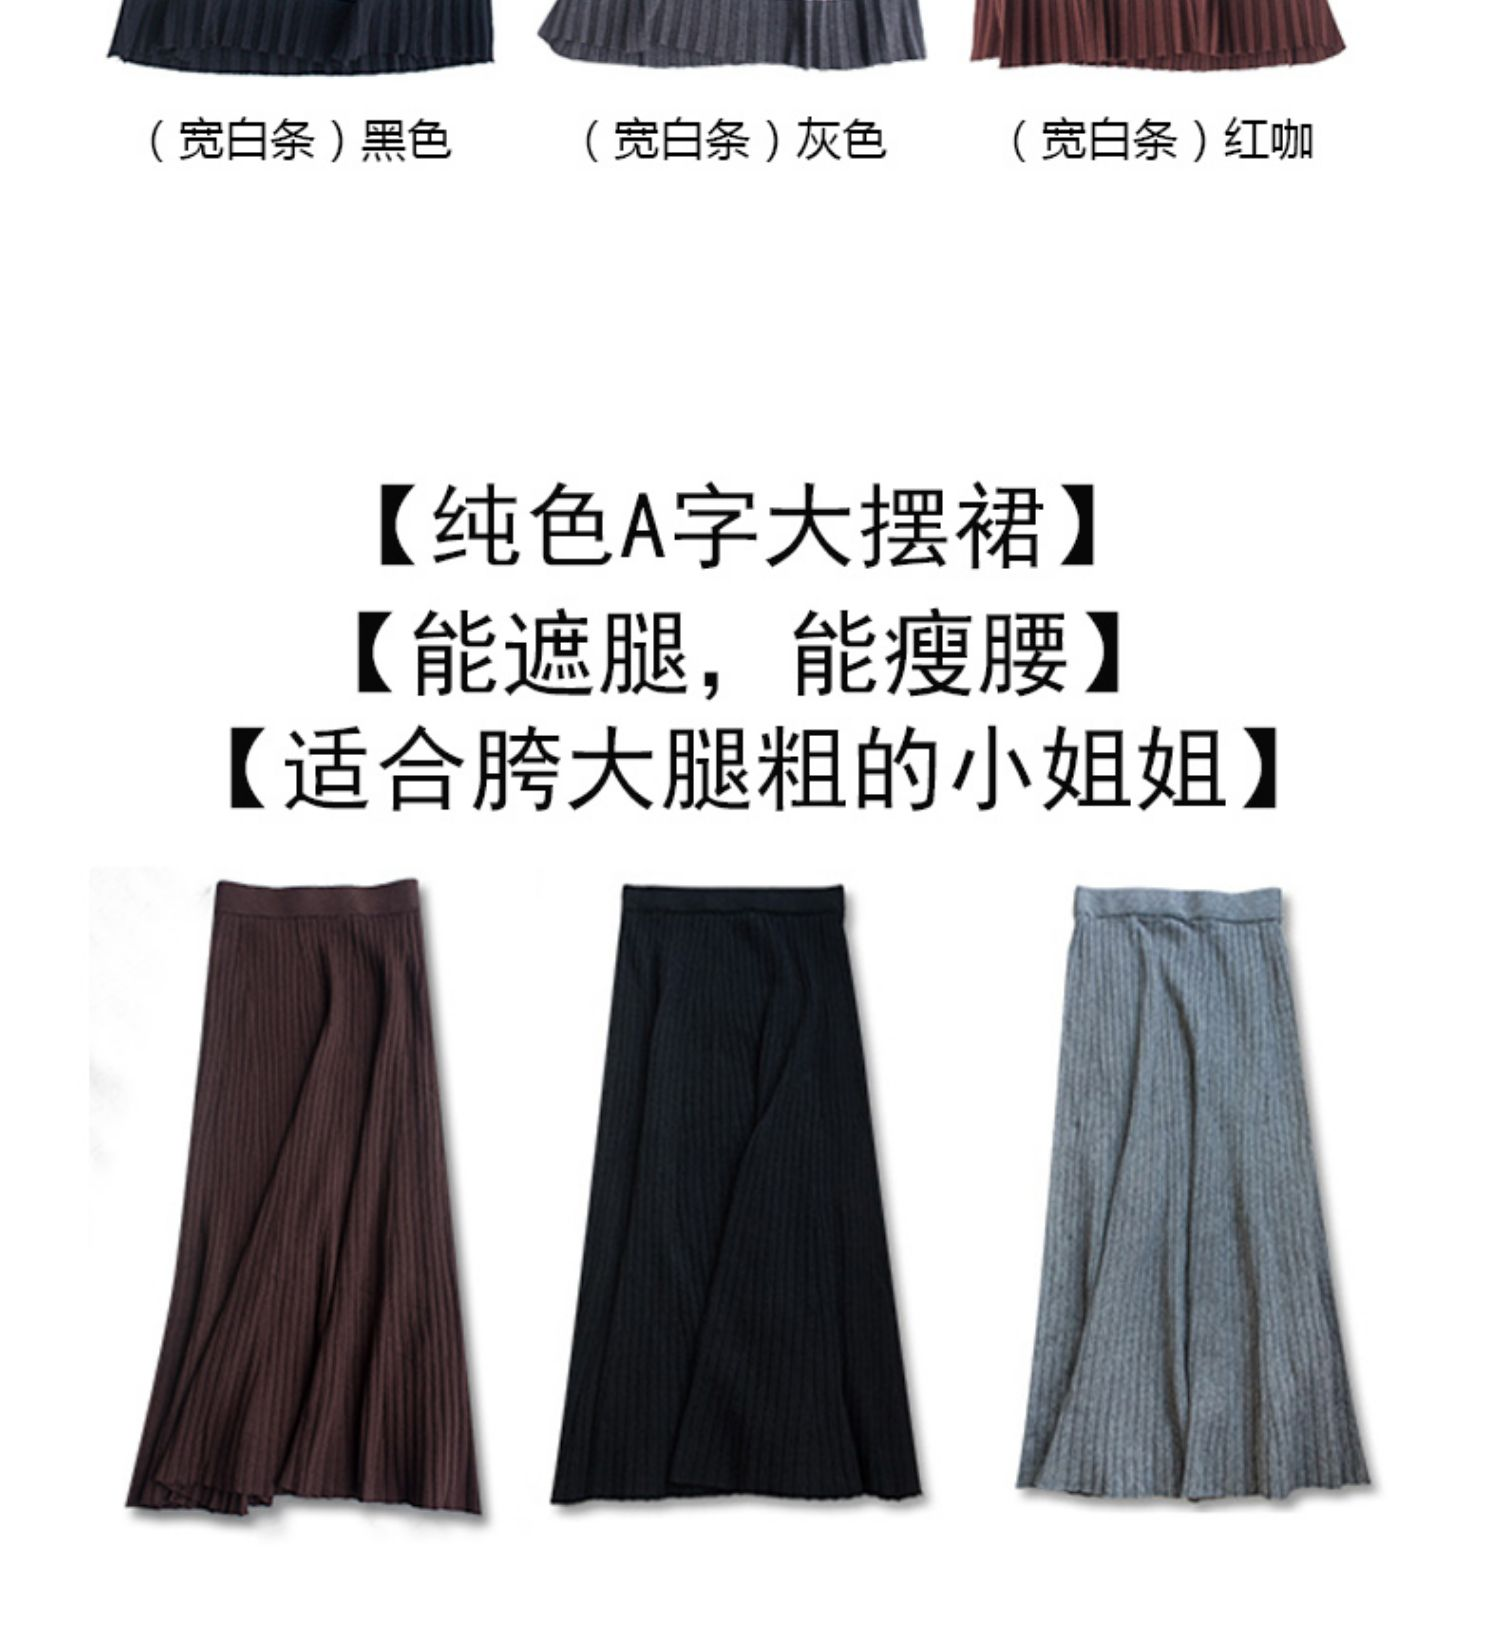 19 Time-limited Empire Skirt Saia Winter Of Tall Waist Knitted Skirts In The New Long Joker Their Children With A Sweater 8